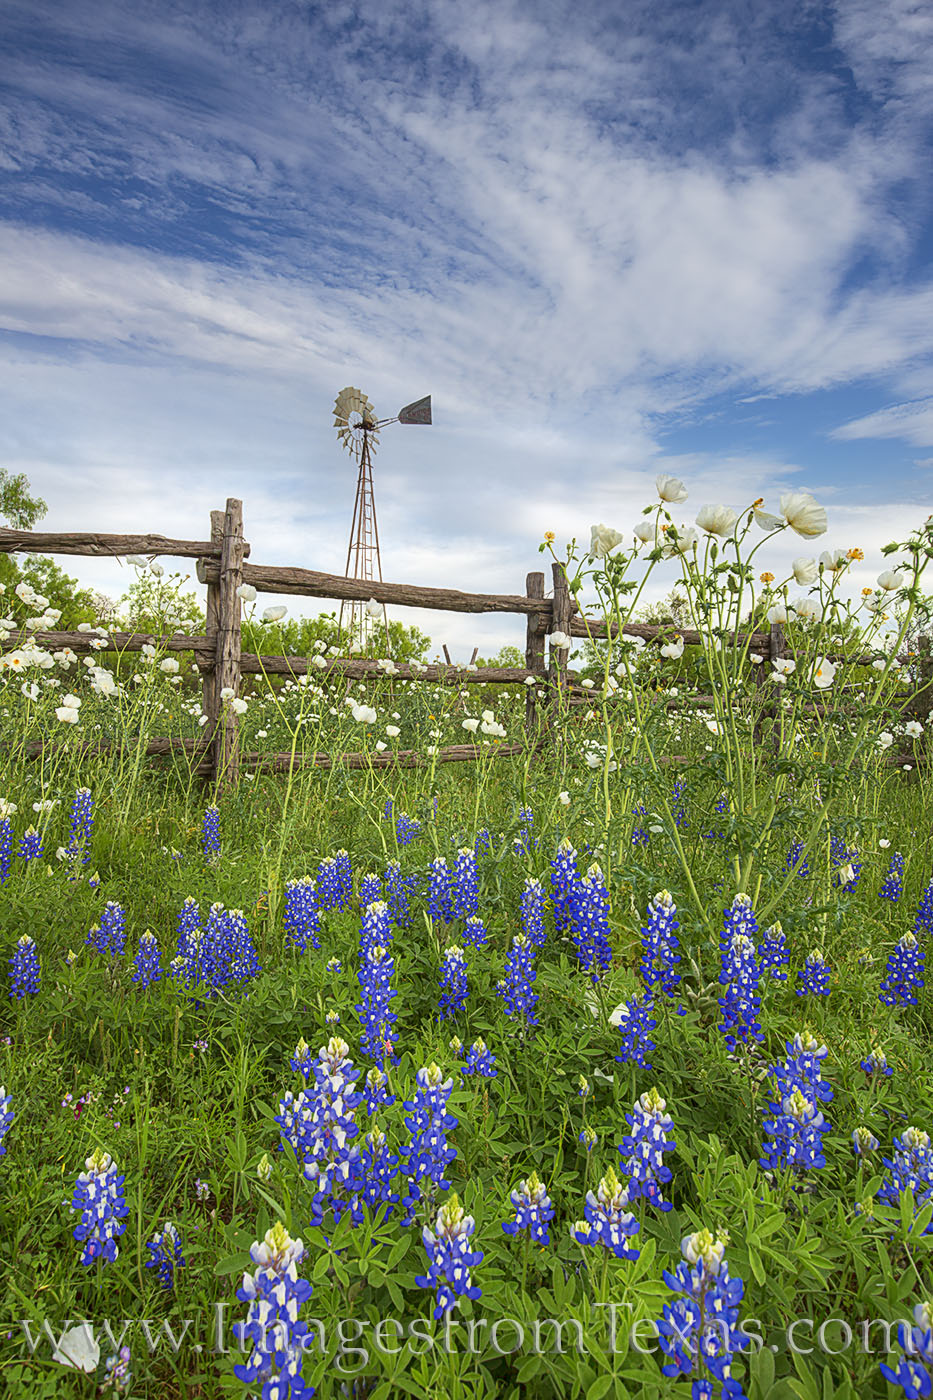 bluebonnets,poppies,texas wildflowers,windmill,texas hill country,texas windmill,bluebonnet prints,bluebonnet photos, photo